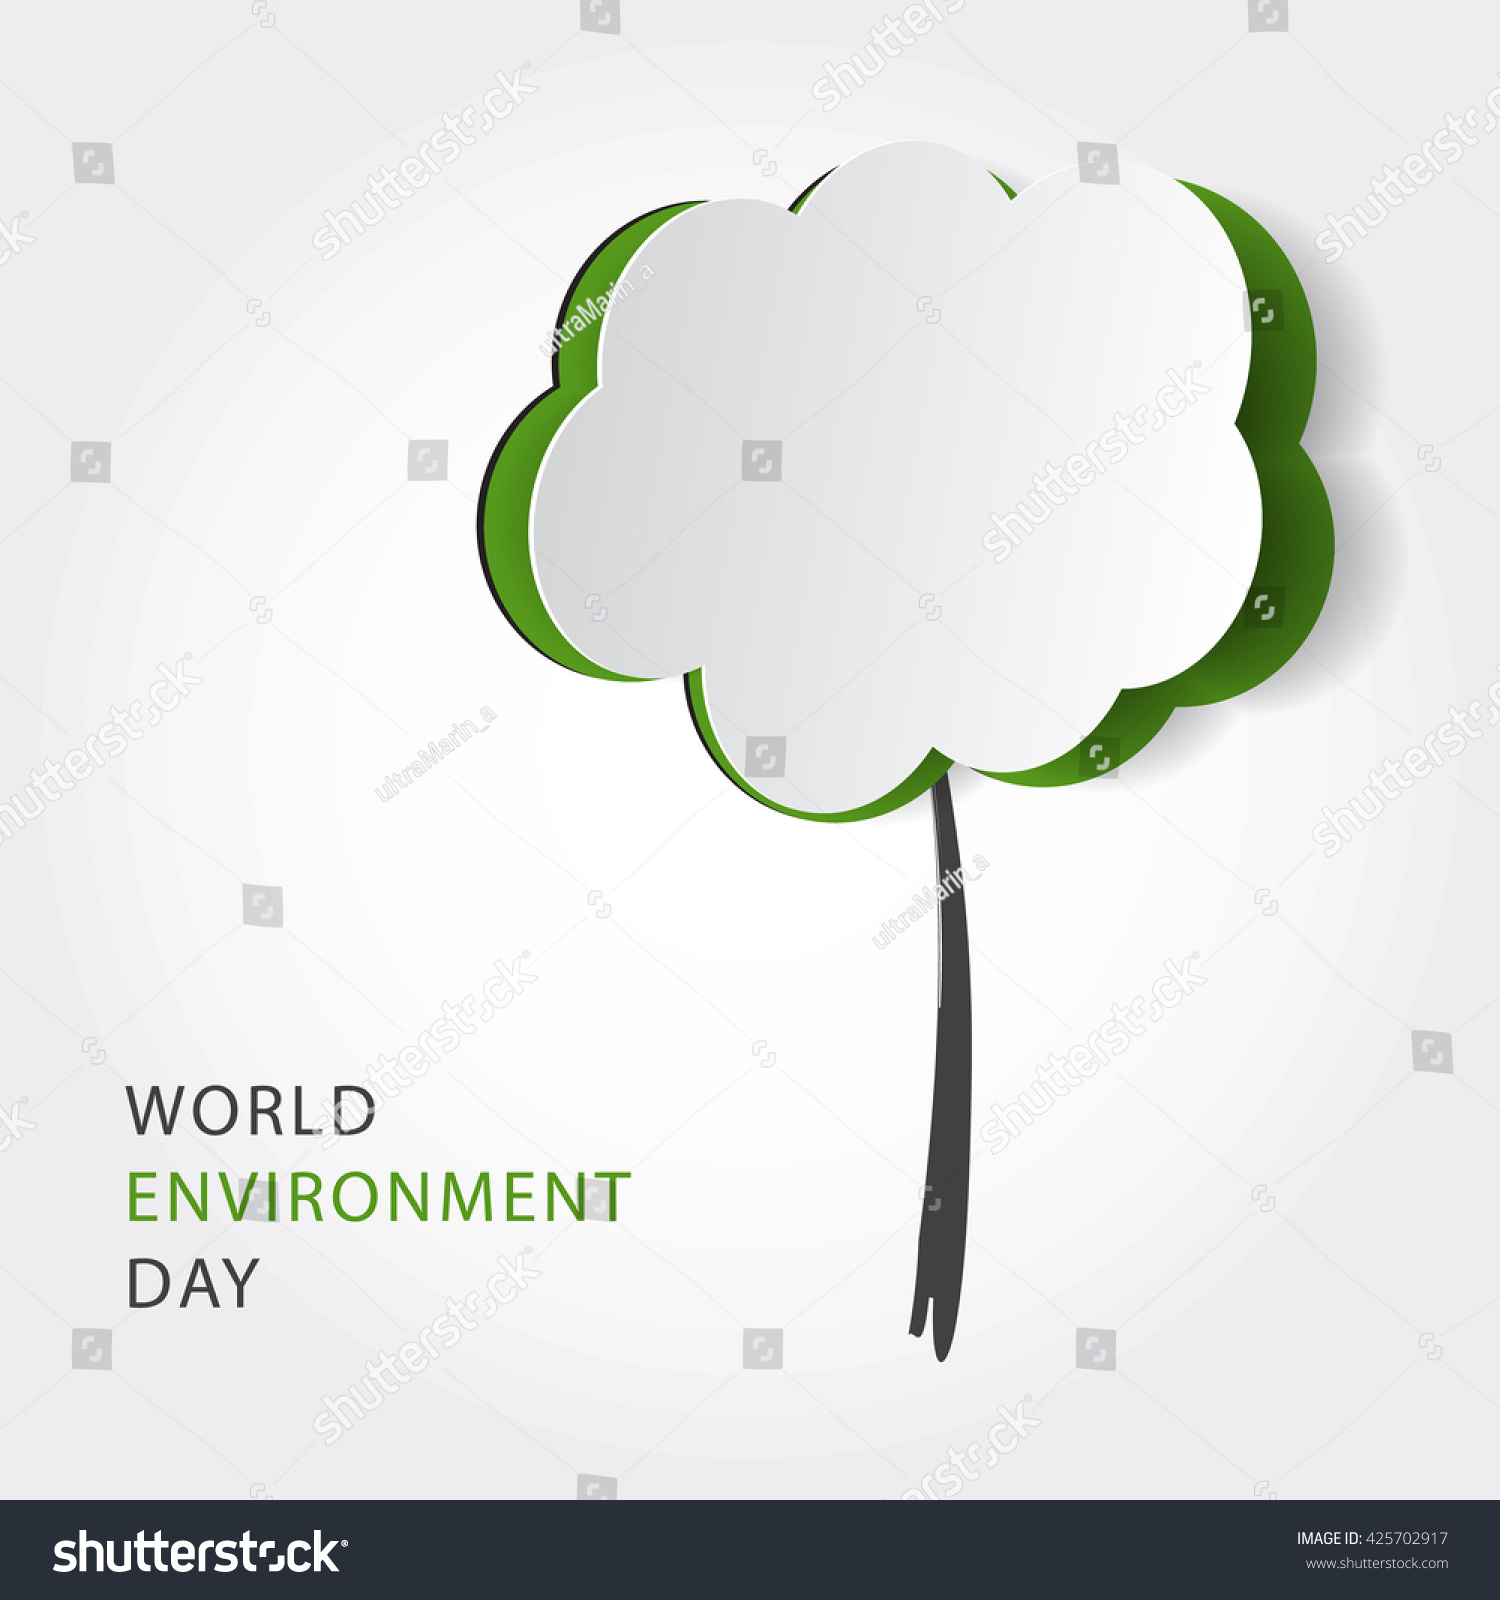 eco friendly environment essay More and more people are thinking about the environmental issues and ecological condition of earth nowadays why has this problem become so relevant what should we do to save our future in my opinion, people have understood that their irresponsibility causes harm to the natural environment.